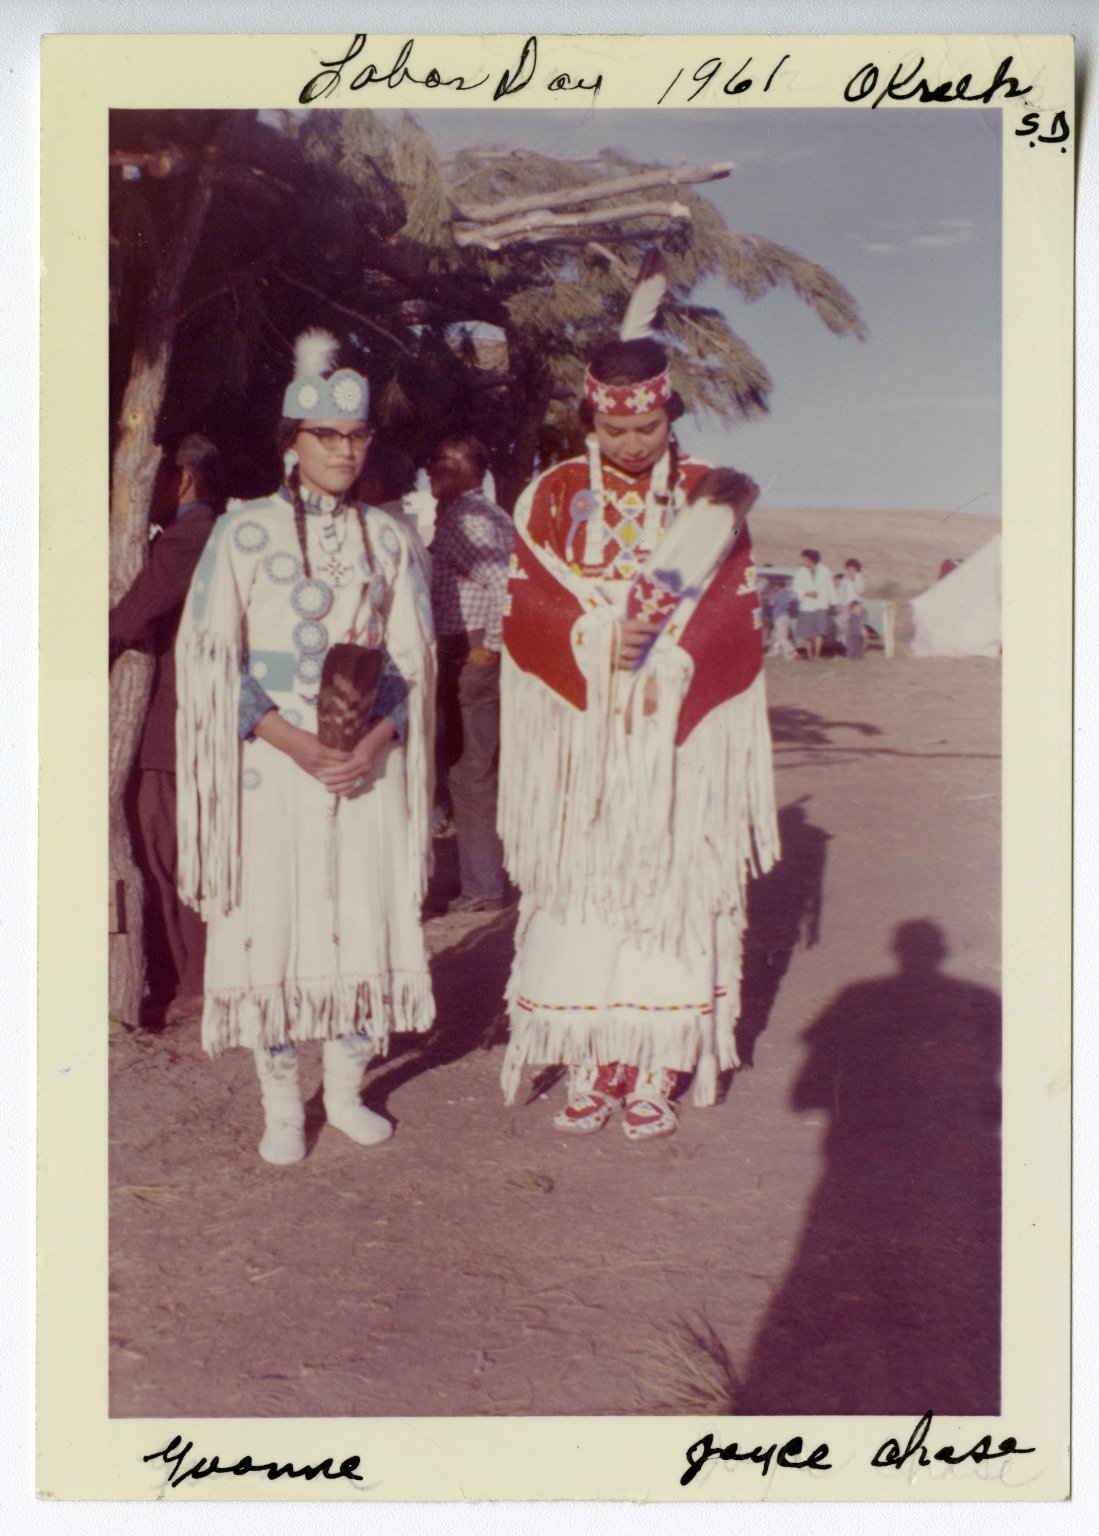 Joyce and Yvonne Chase at Okreek Pow Wow